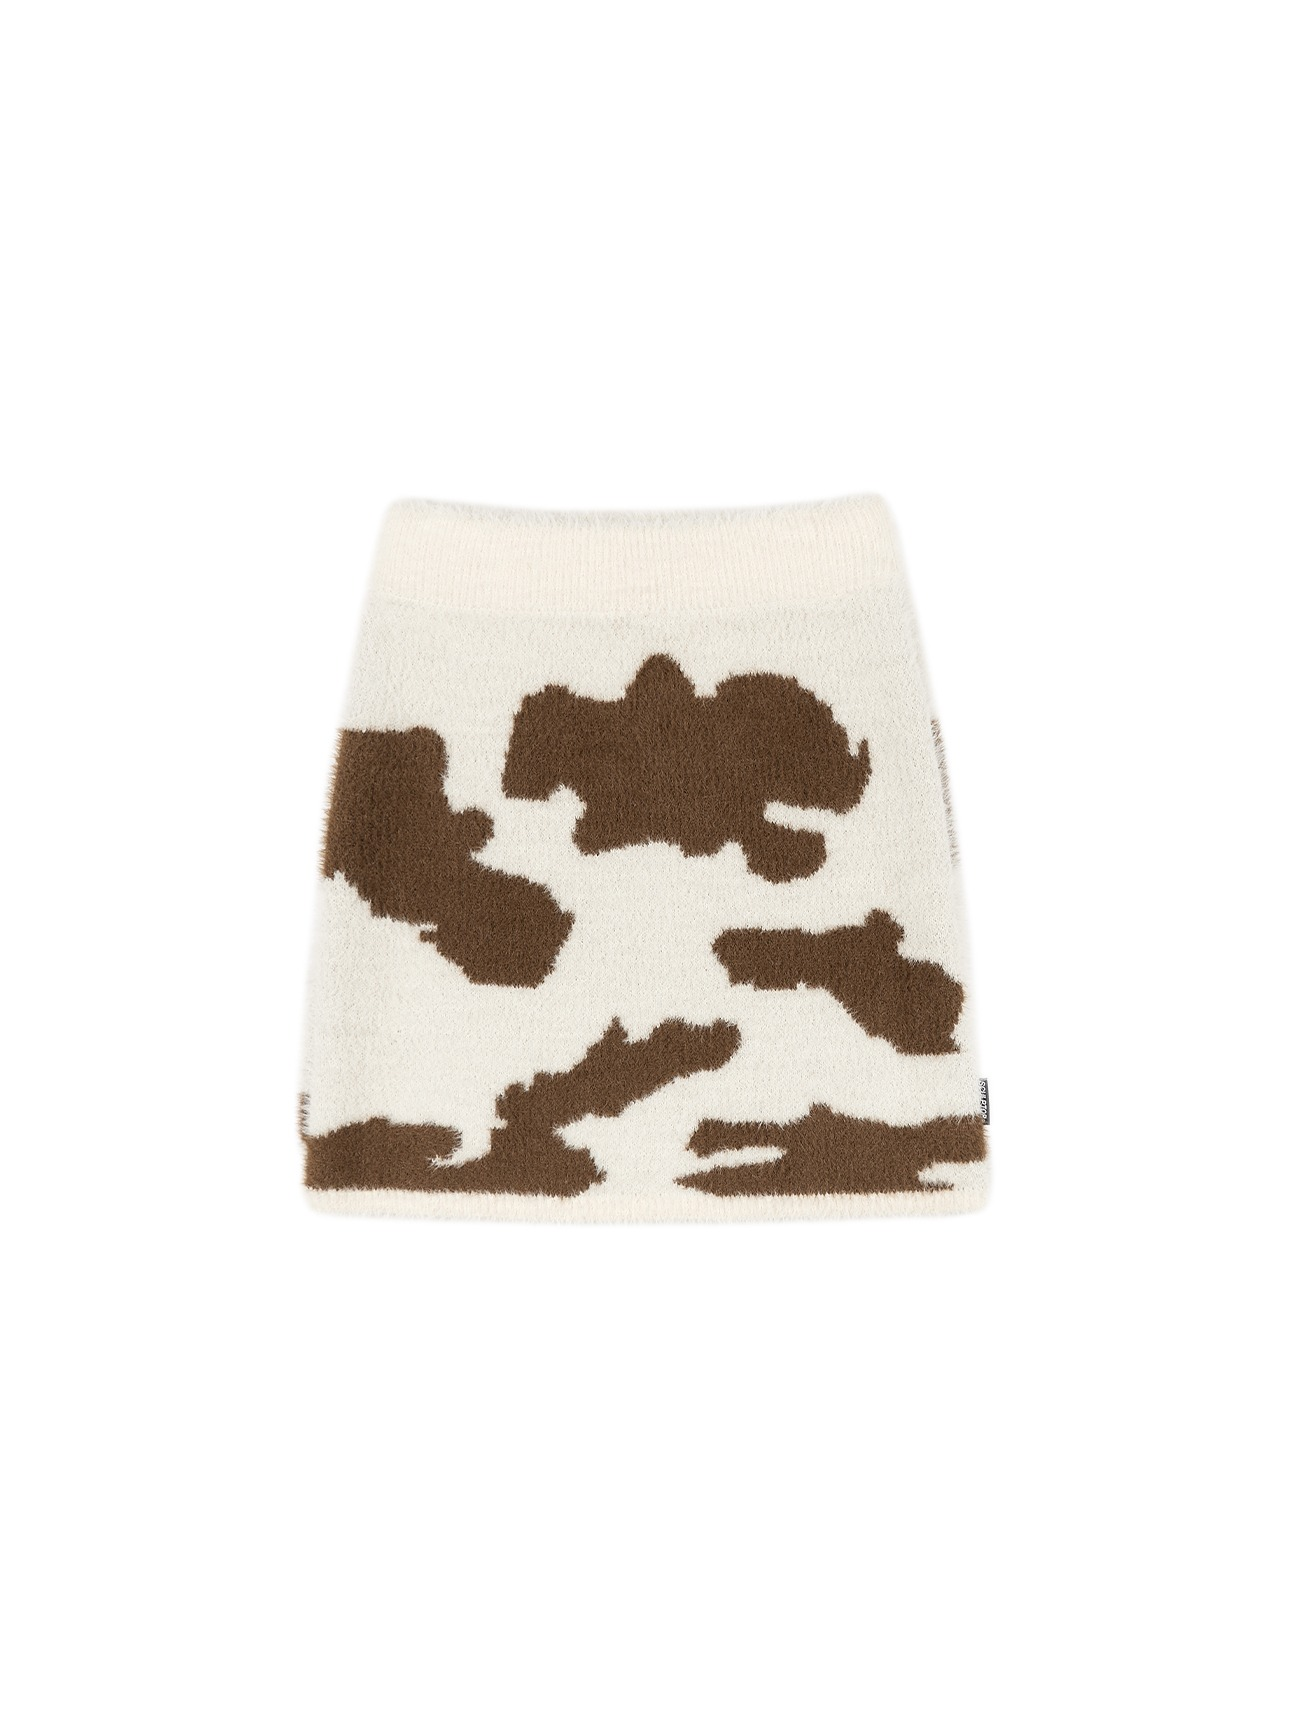 Moo Fuzzy Mini Skirt Brown/Cream